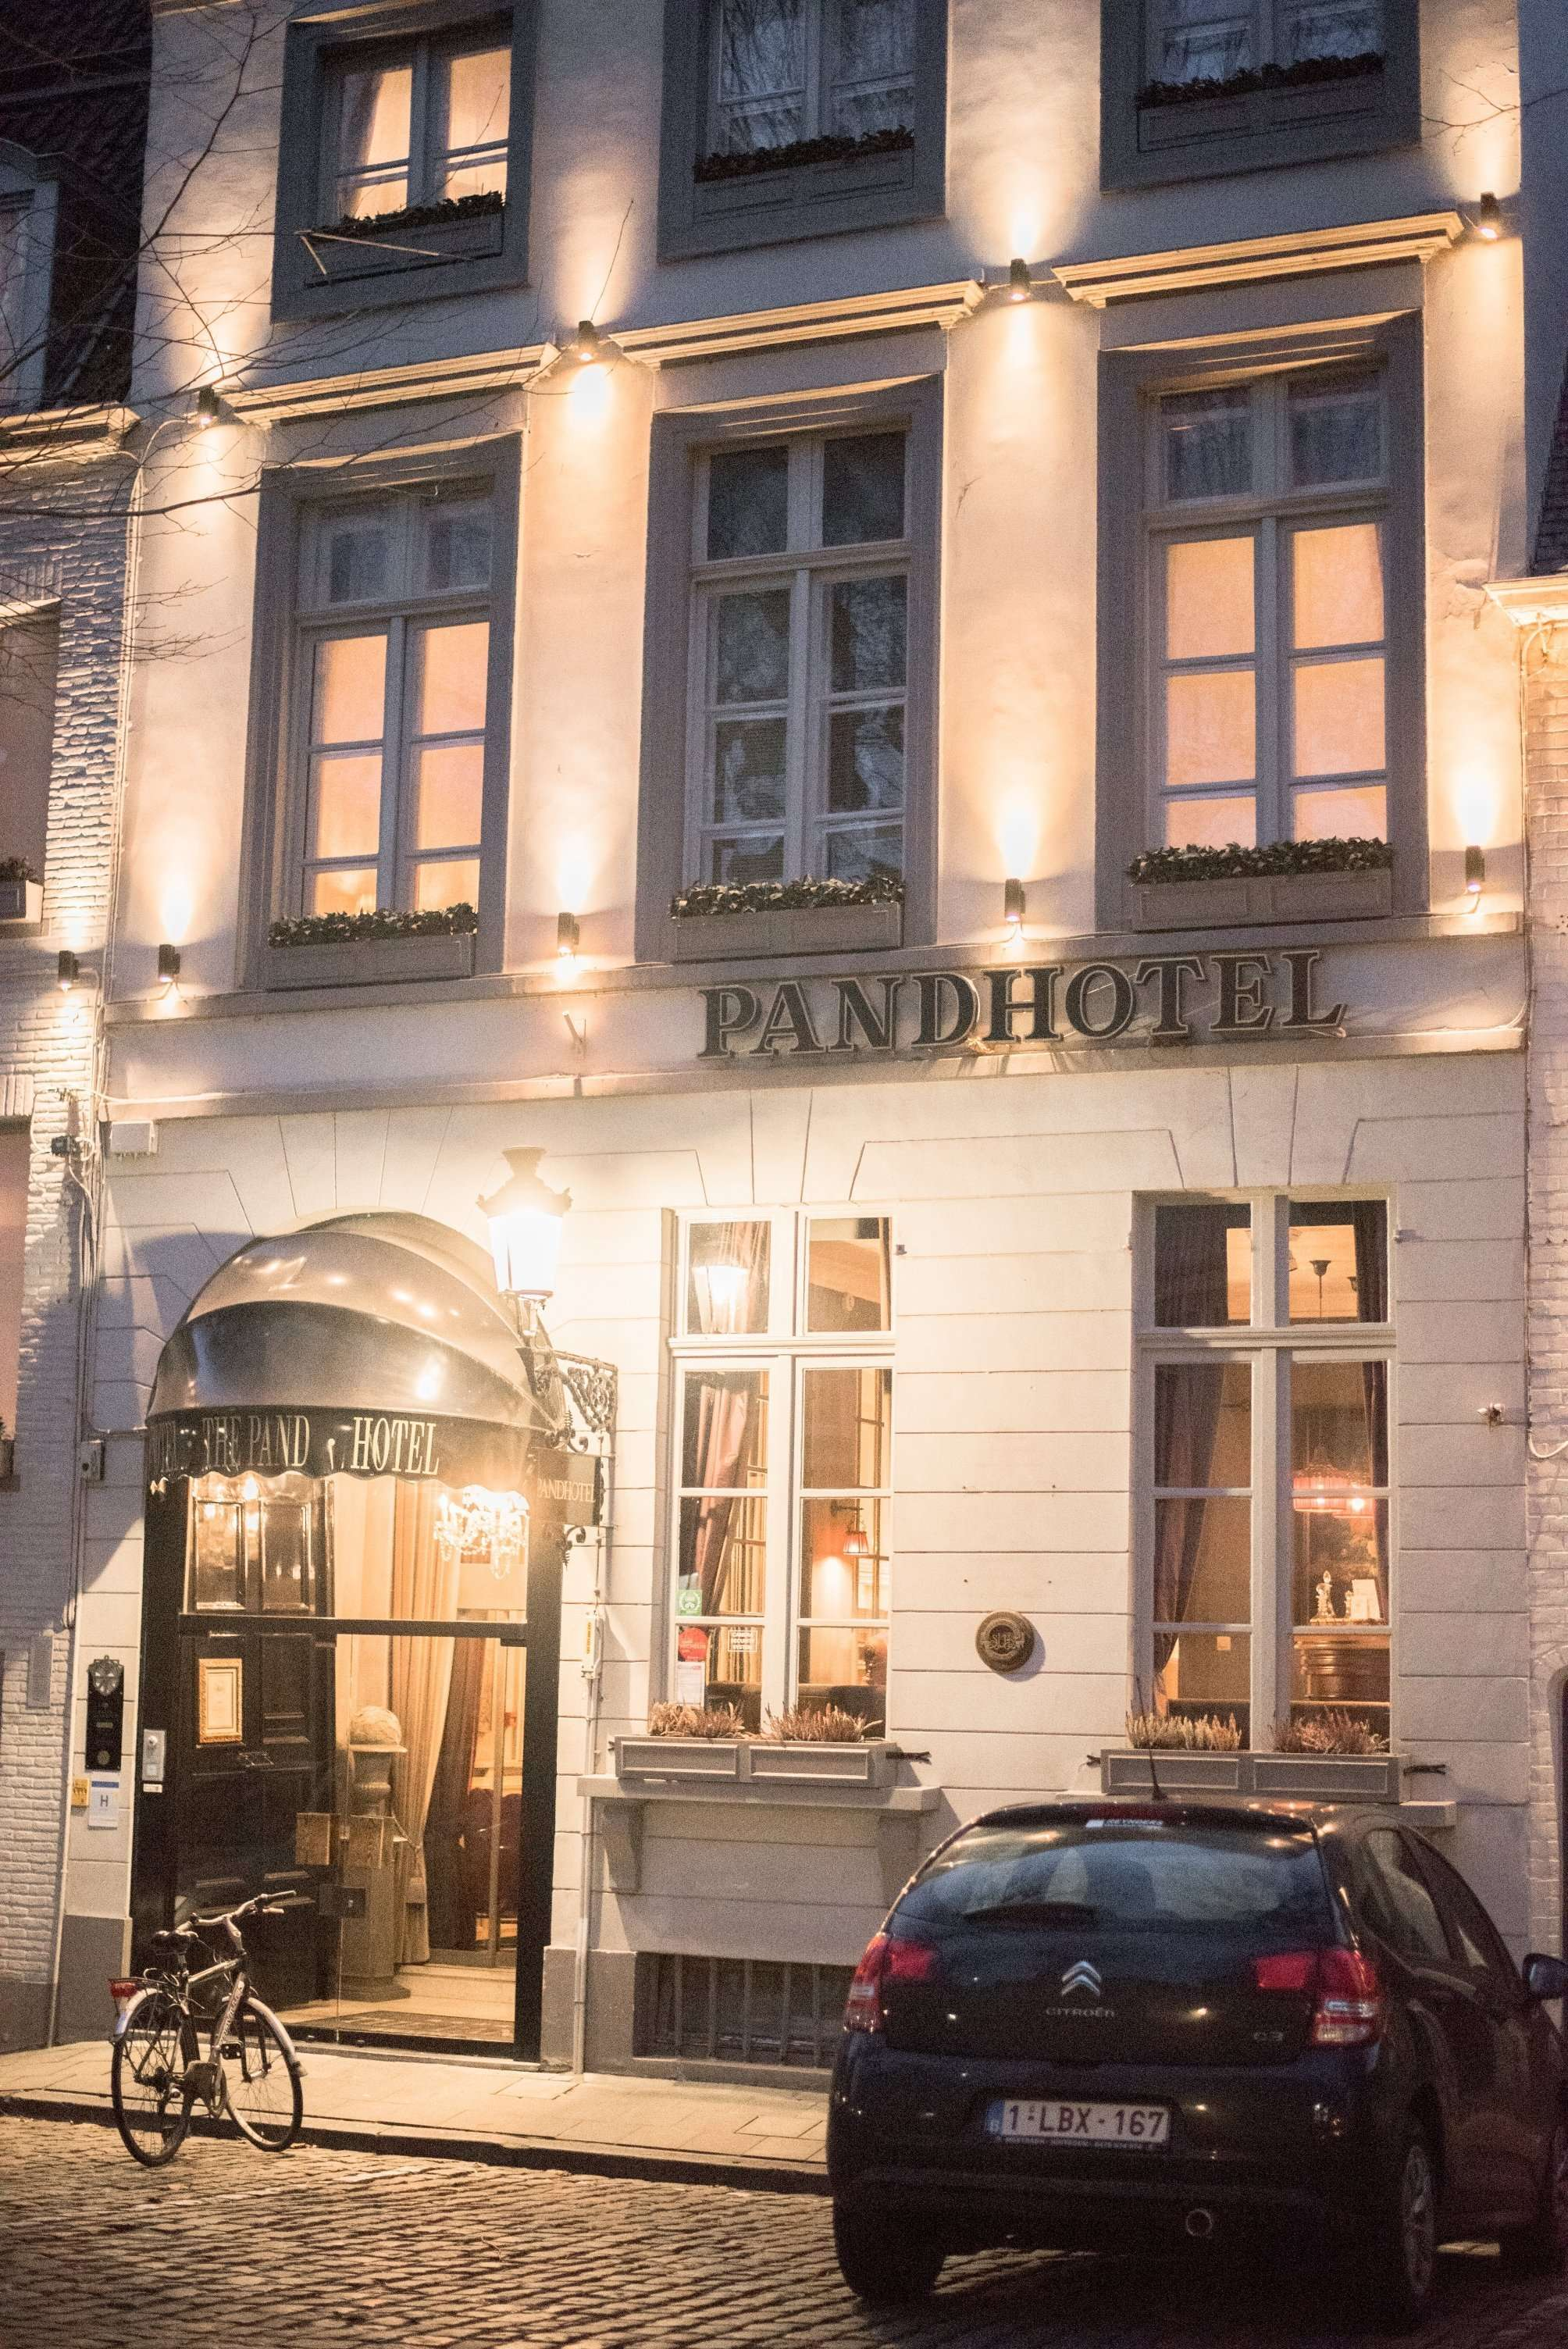 A Luxury Stay At The Pand Hotel In Bruges  Belgium  U2022 The